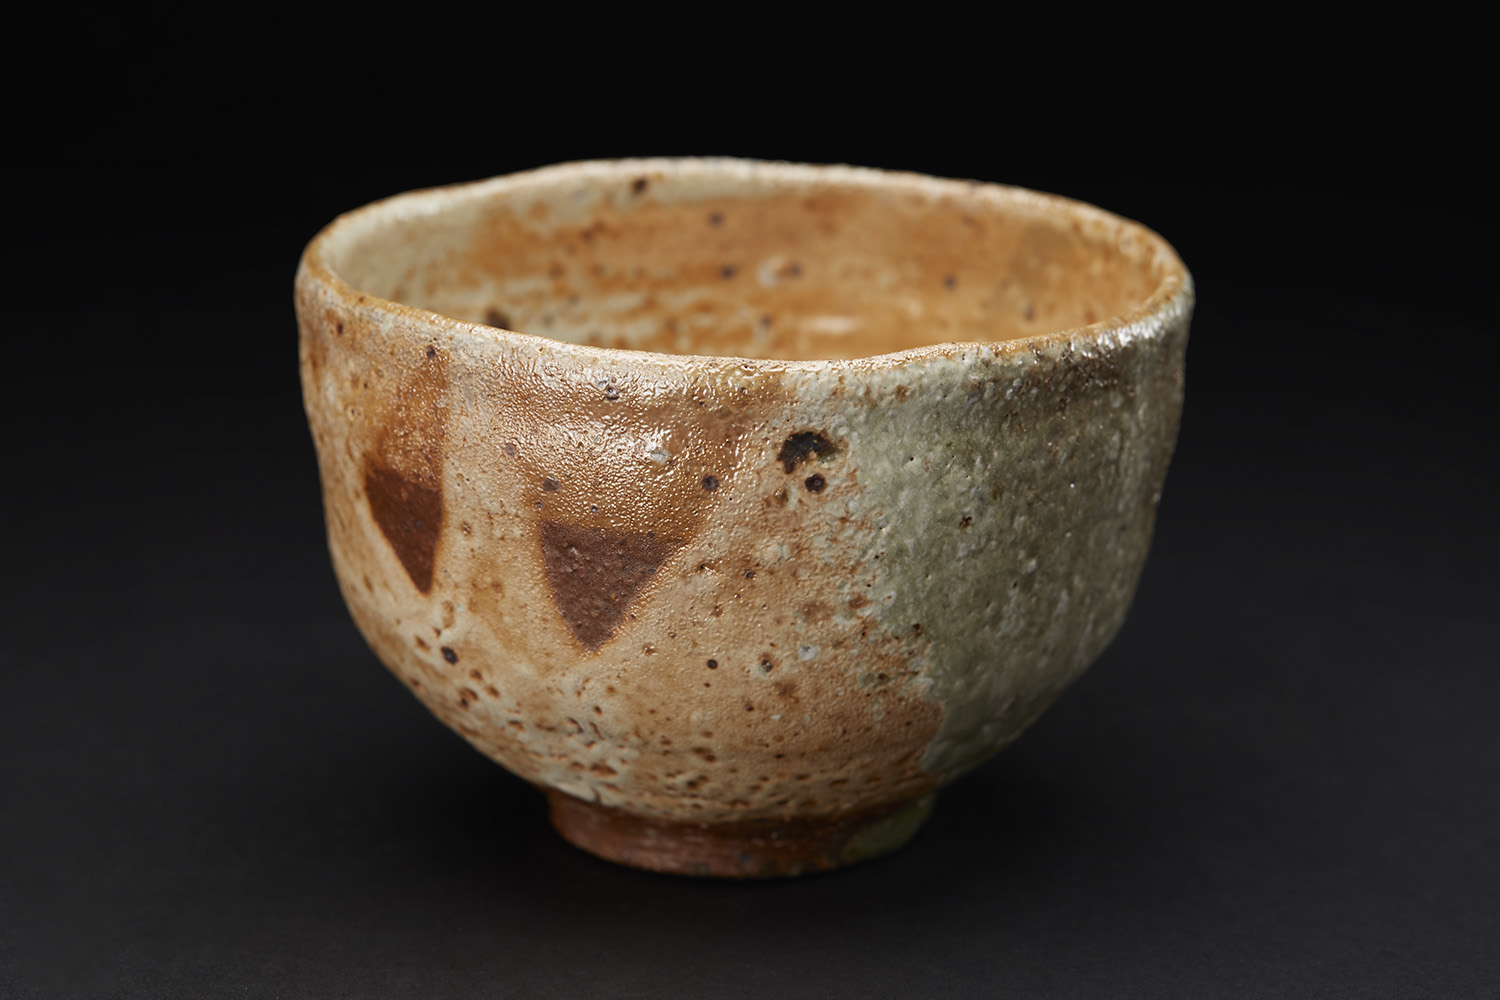 Mike Weber Matcha Chawan, 2016 Ceramic, high-fired in anagama wood-fire kiln for multiple days, shino glazed with natural forming ash glaze 3.5 x 5 x 5 inches 8.9 x 12.7 x 12.7 cm MWe 9